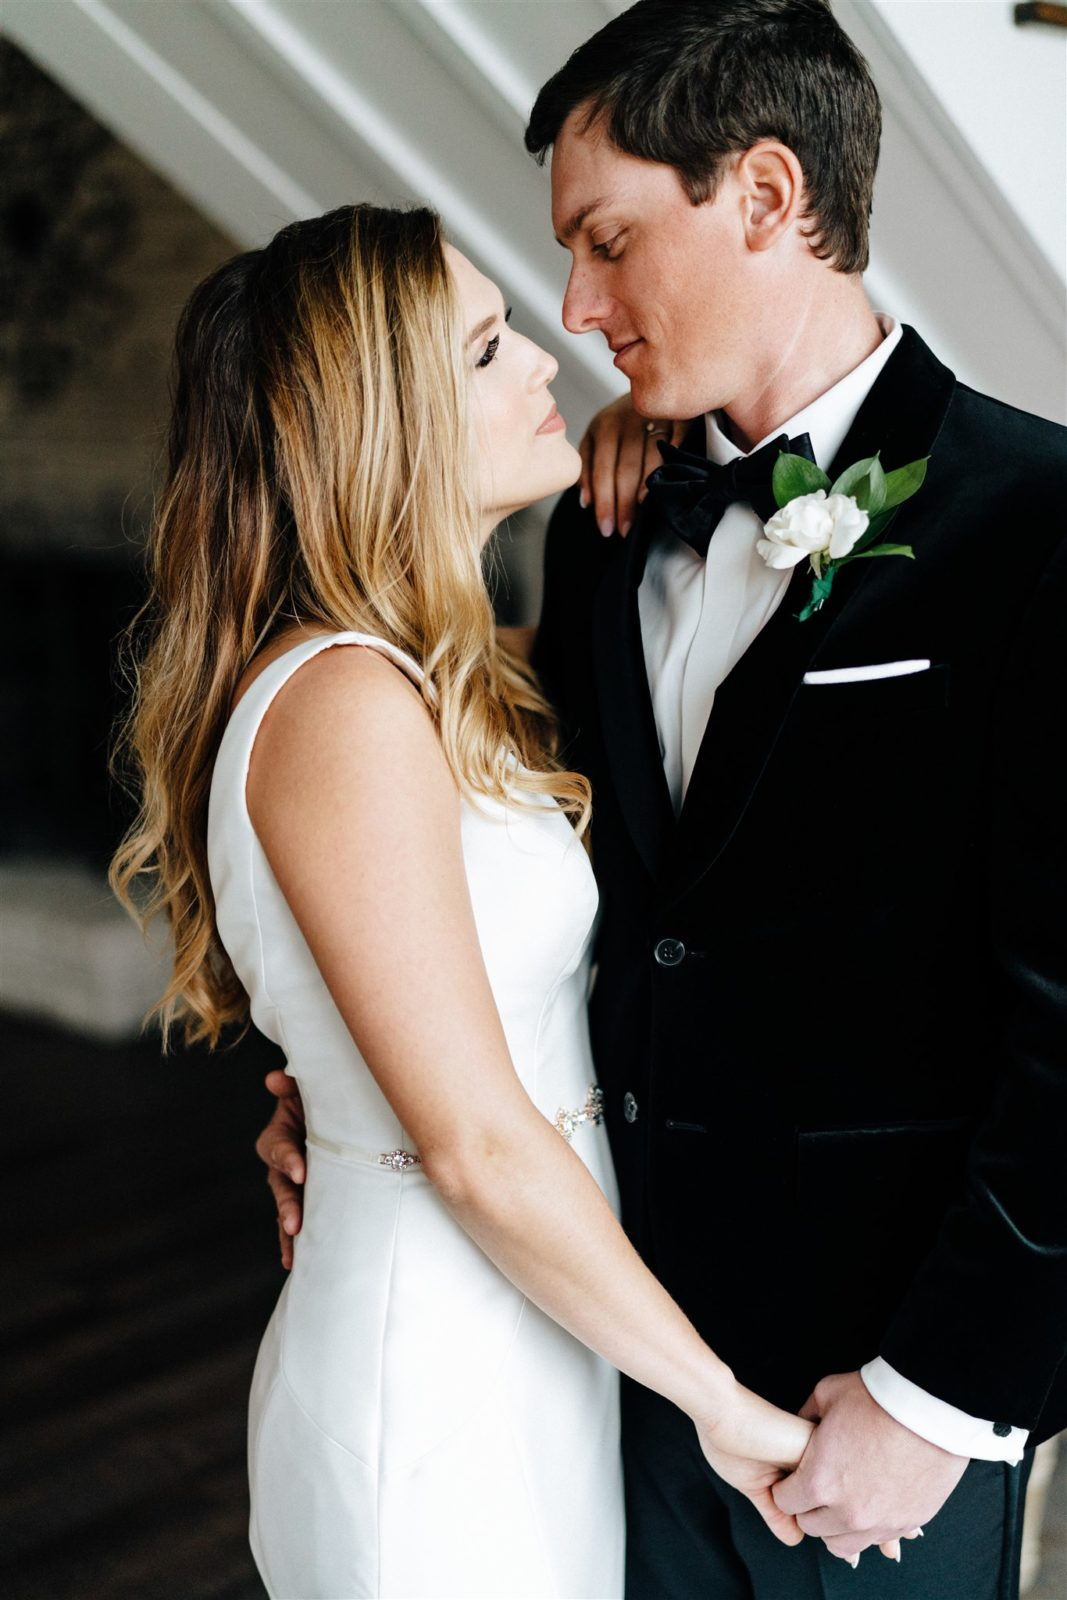 Grant Daniels Wedding Photography featured on Alexa Kay Events